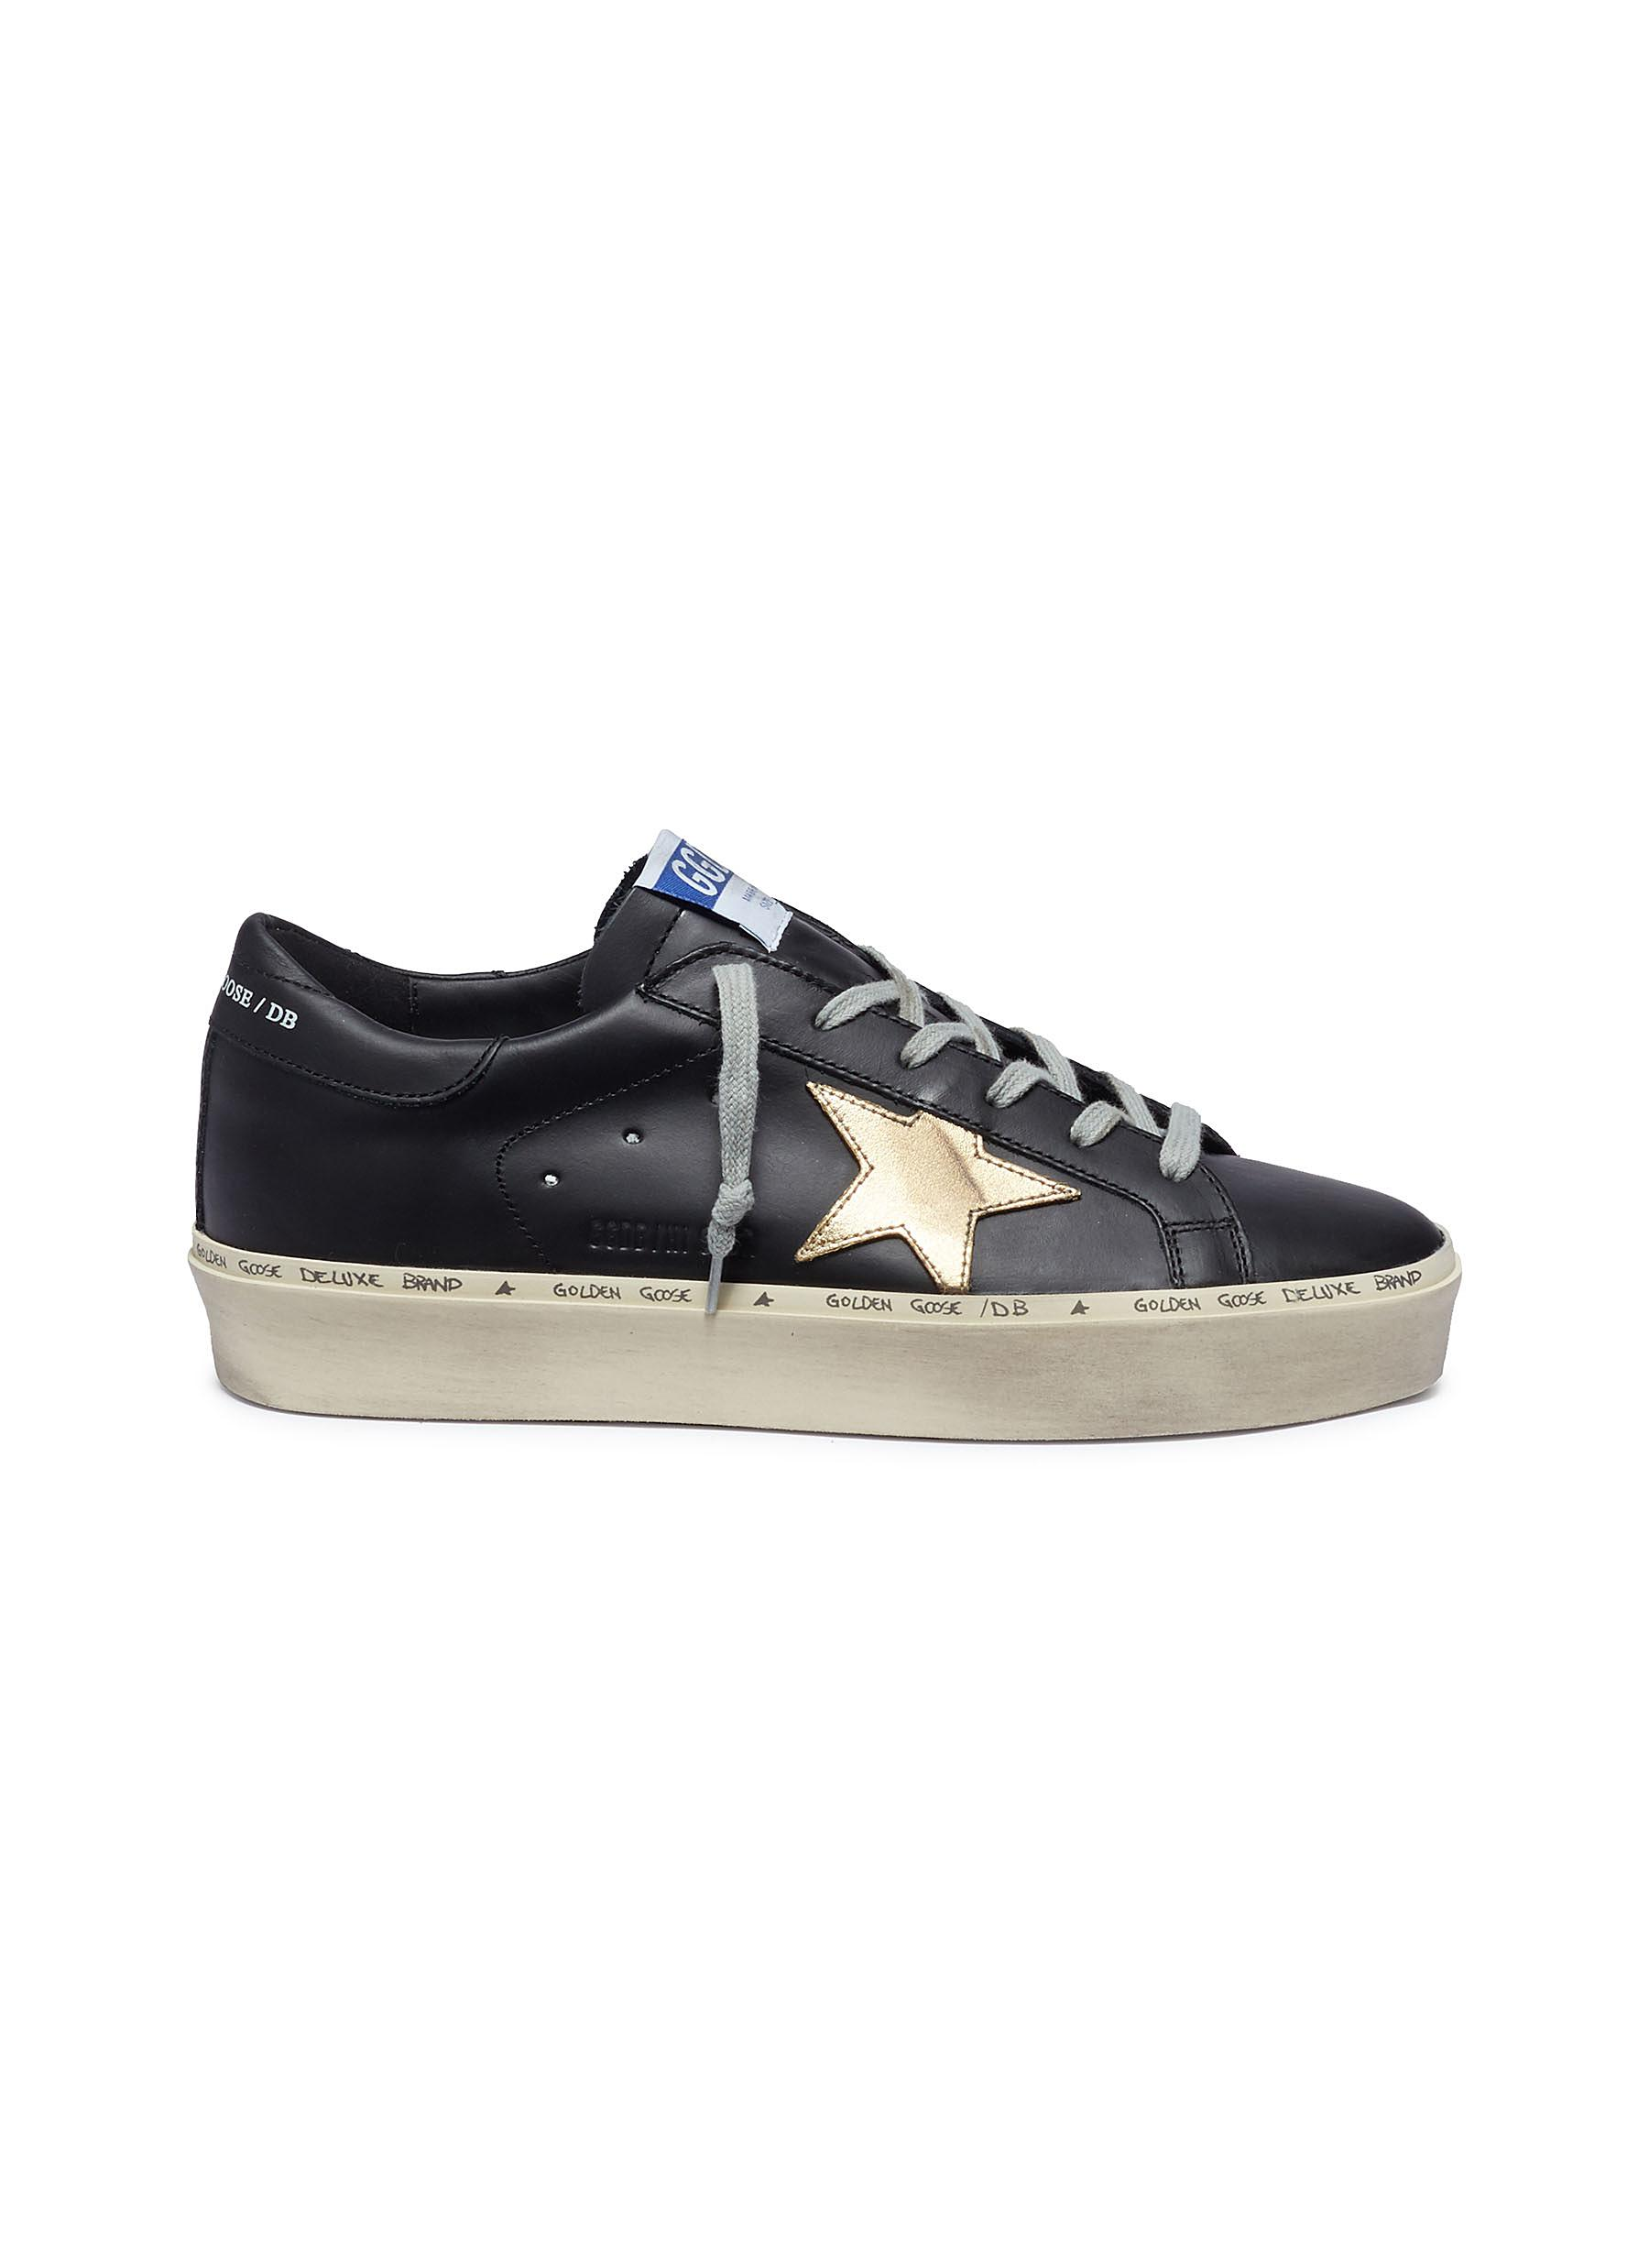 Hi Star leather flatform sneakers by Golden Goose